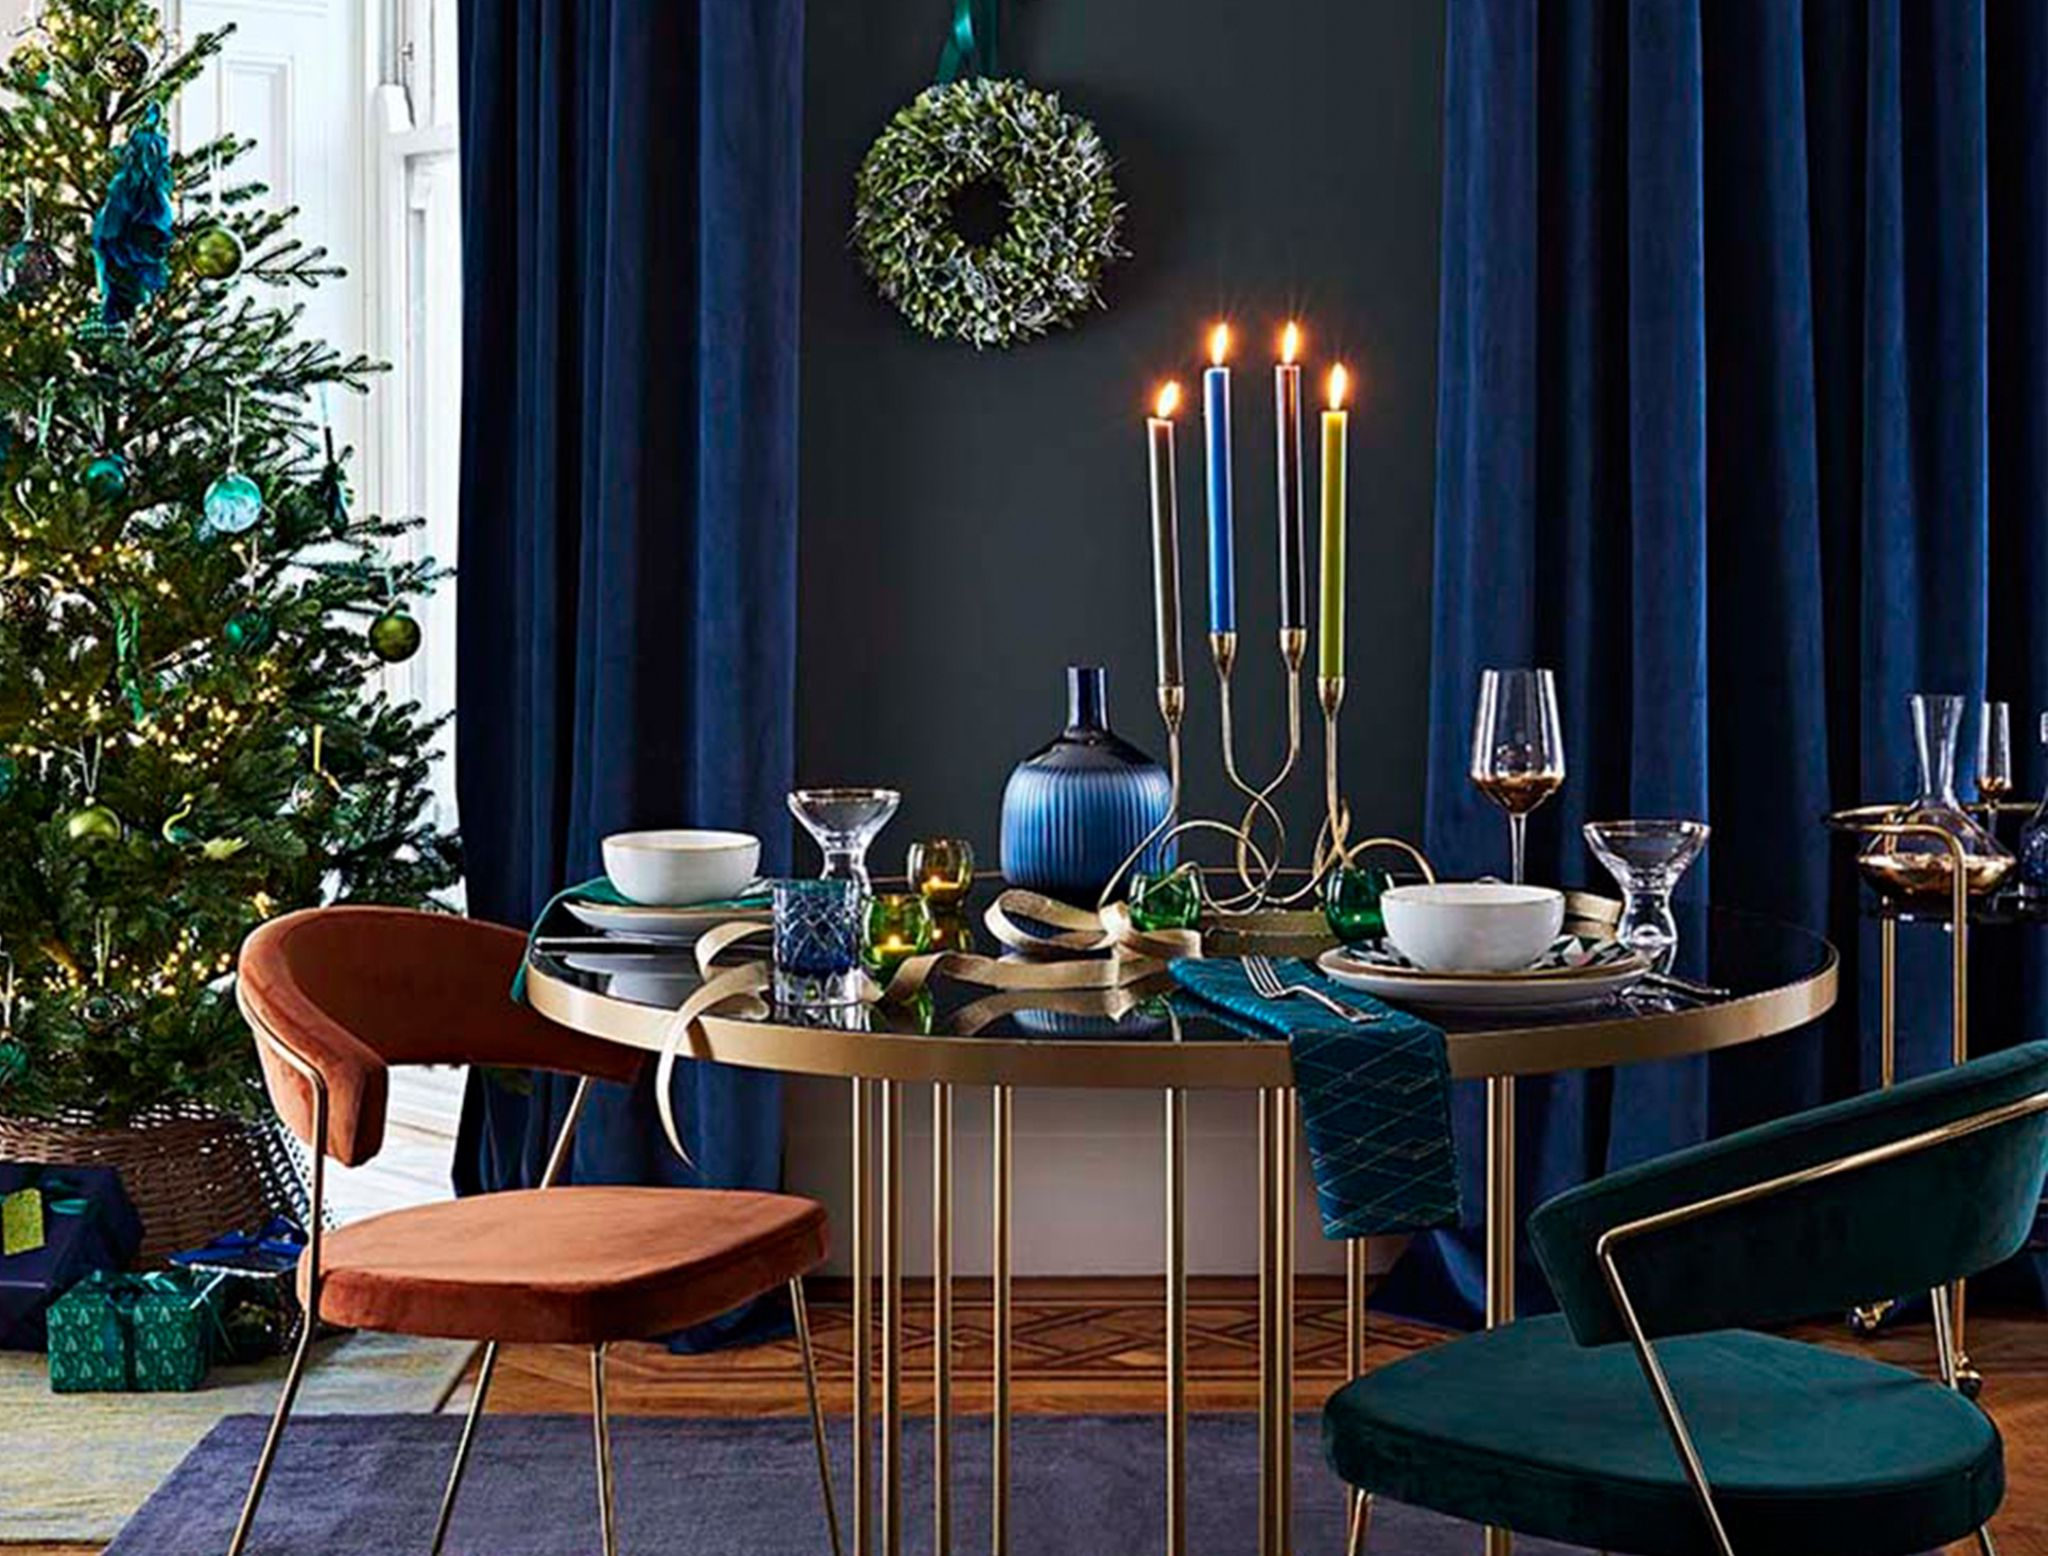 Get set for Christmas with our guide to a beautifully laid table